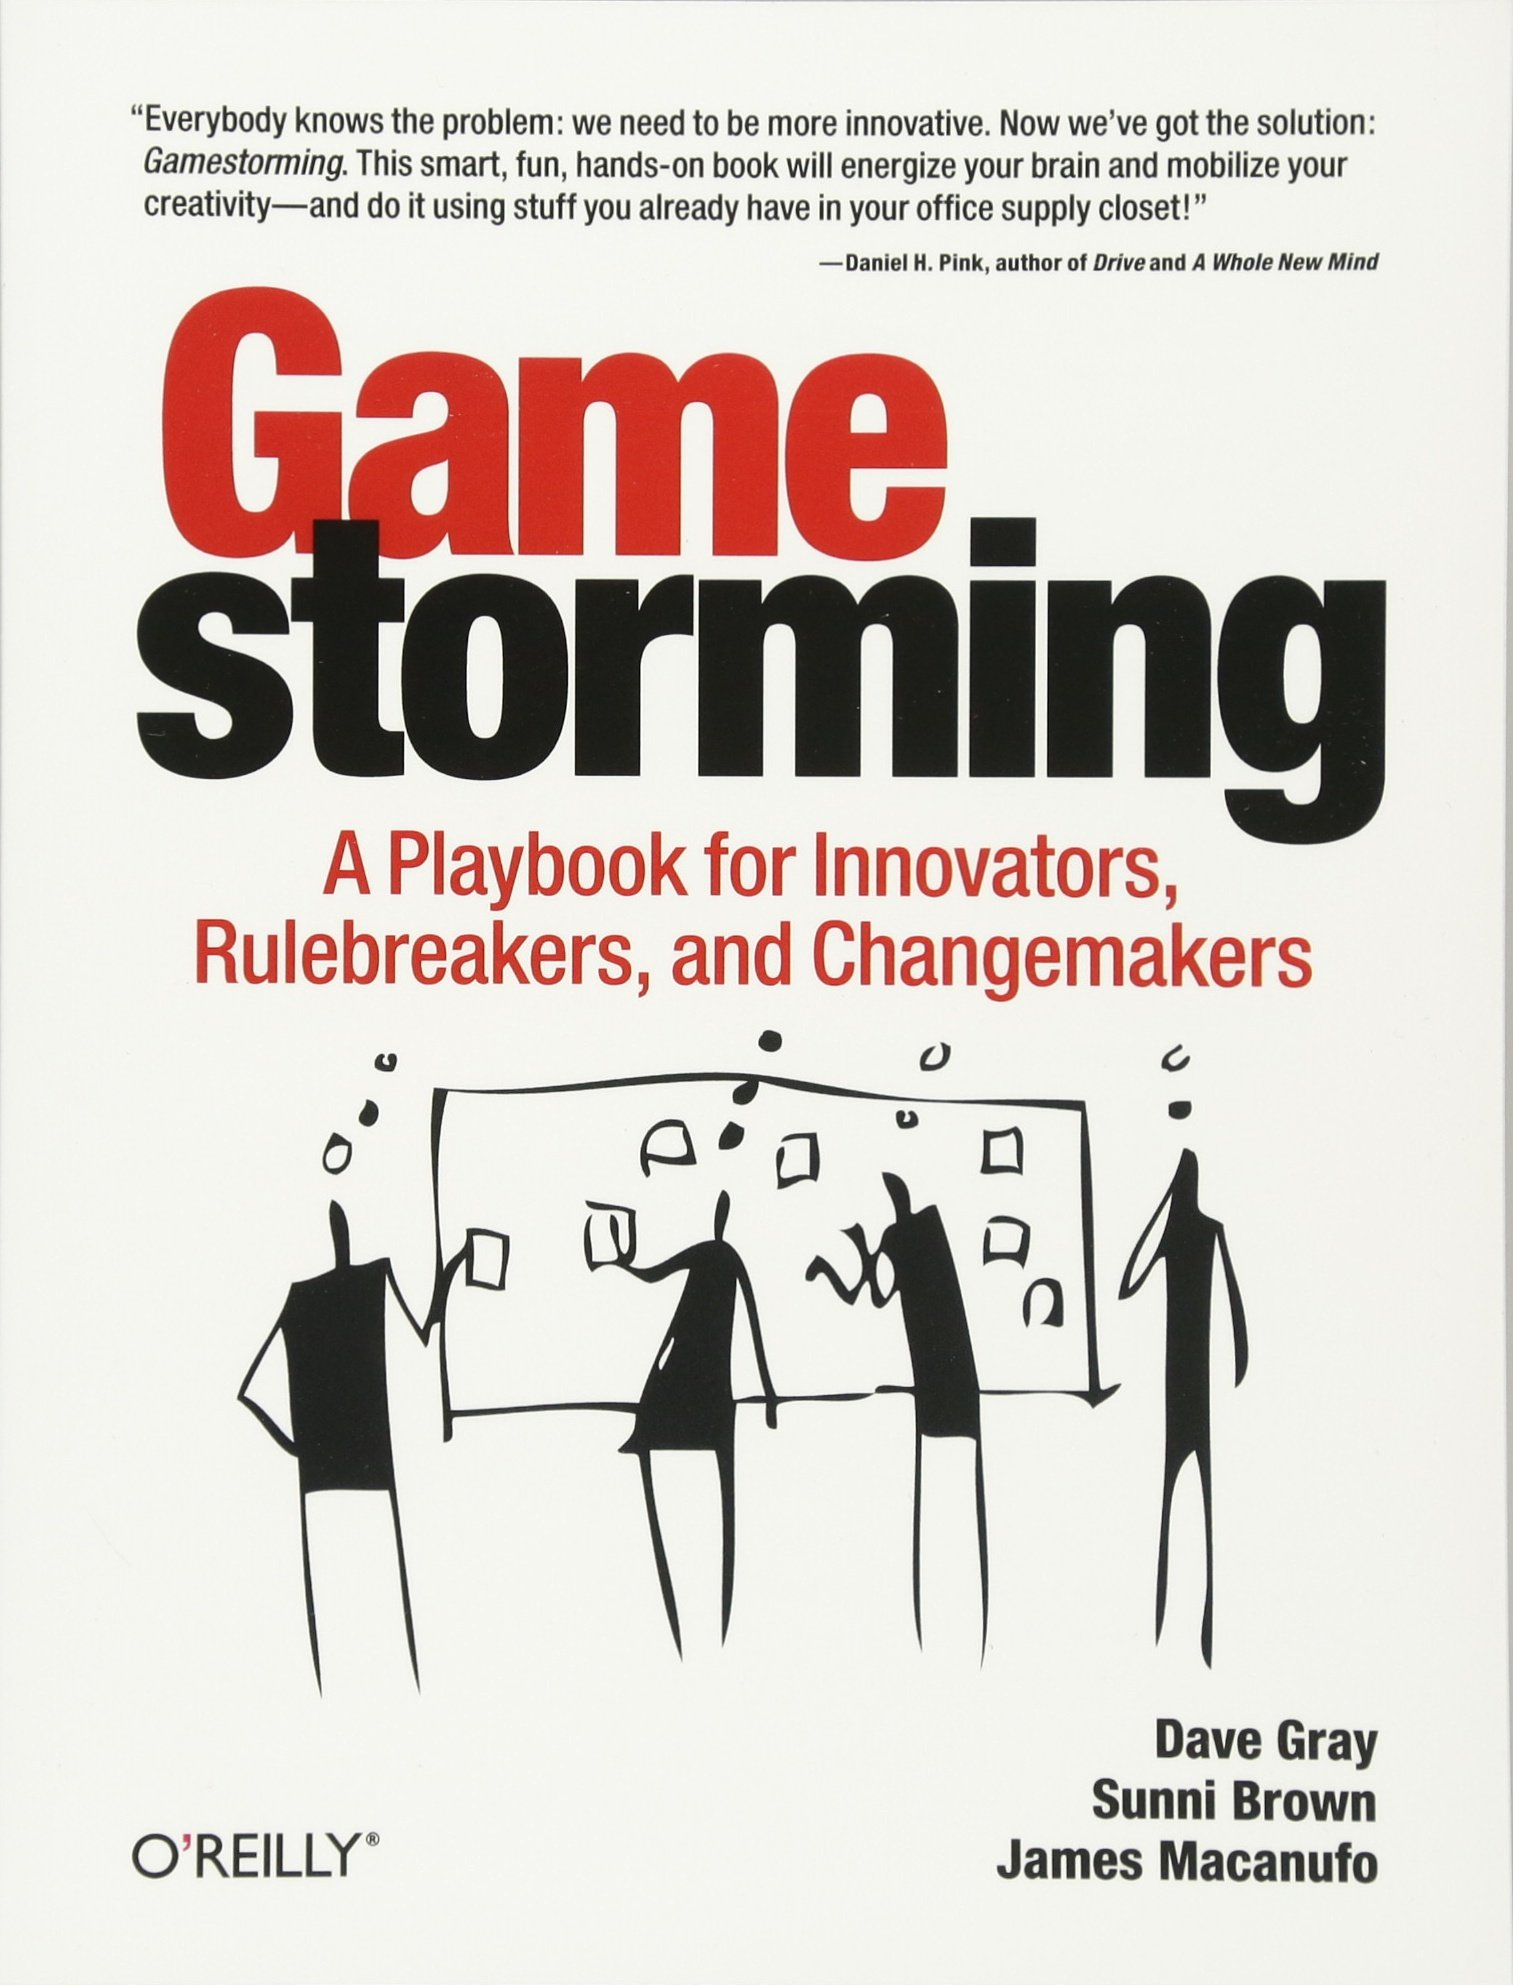 Gamestorming - A Playbook for Innovators, Rulebreakers and Changemakers